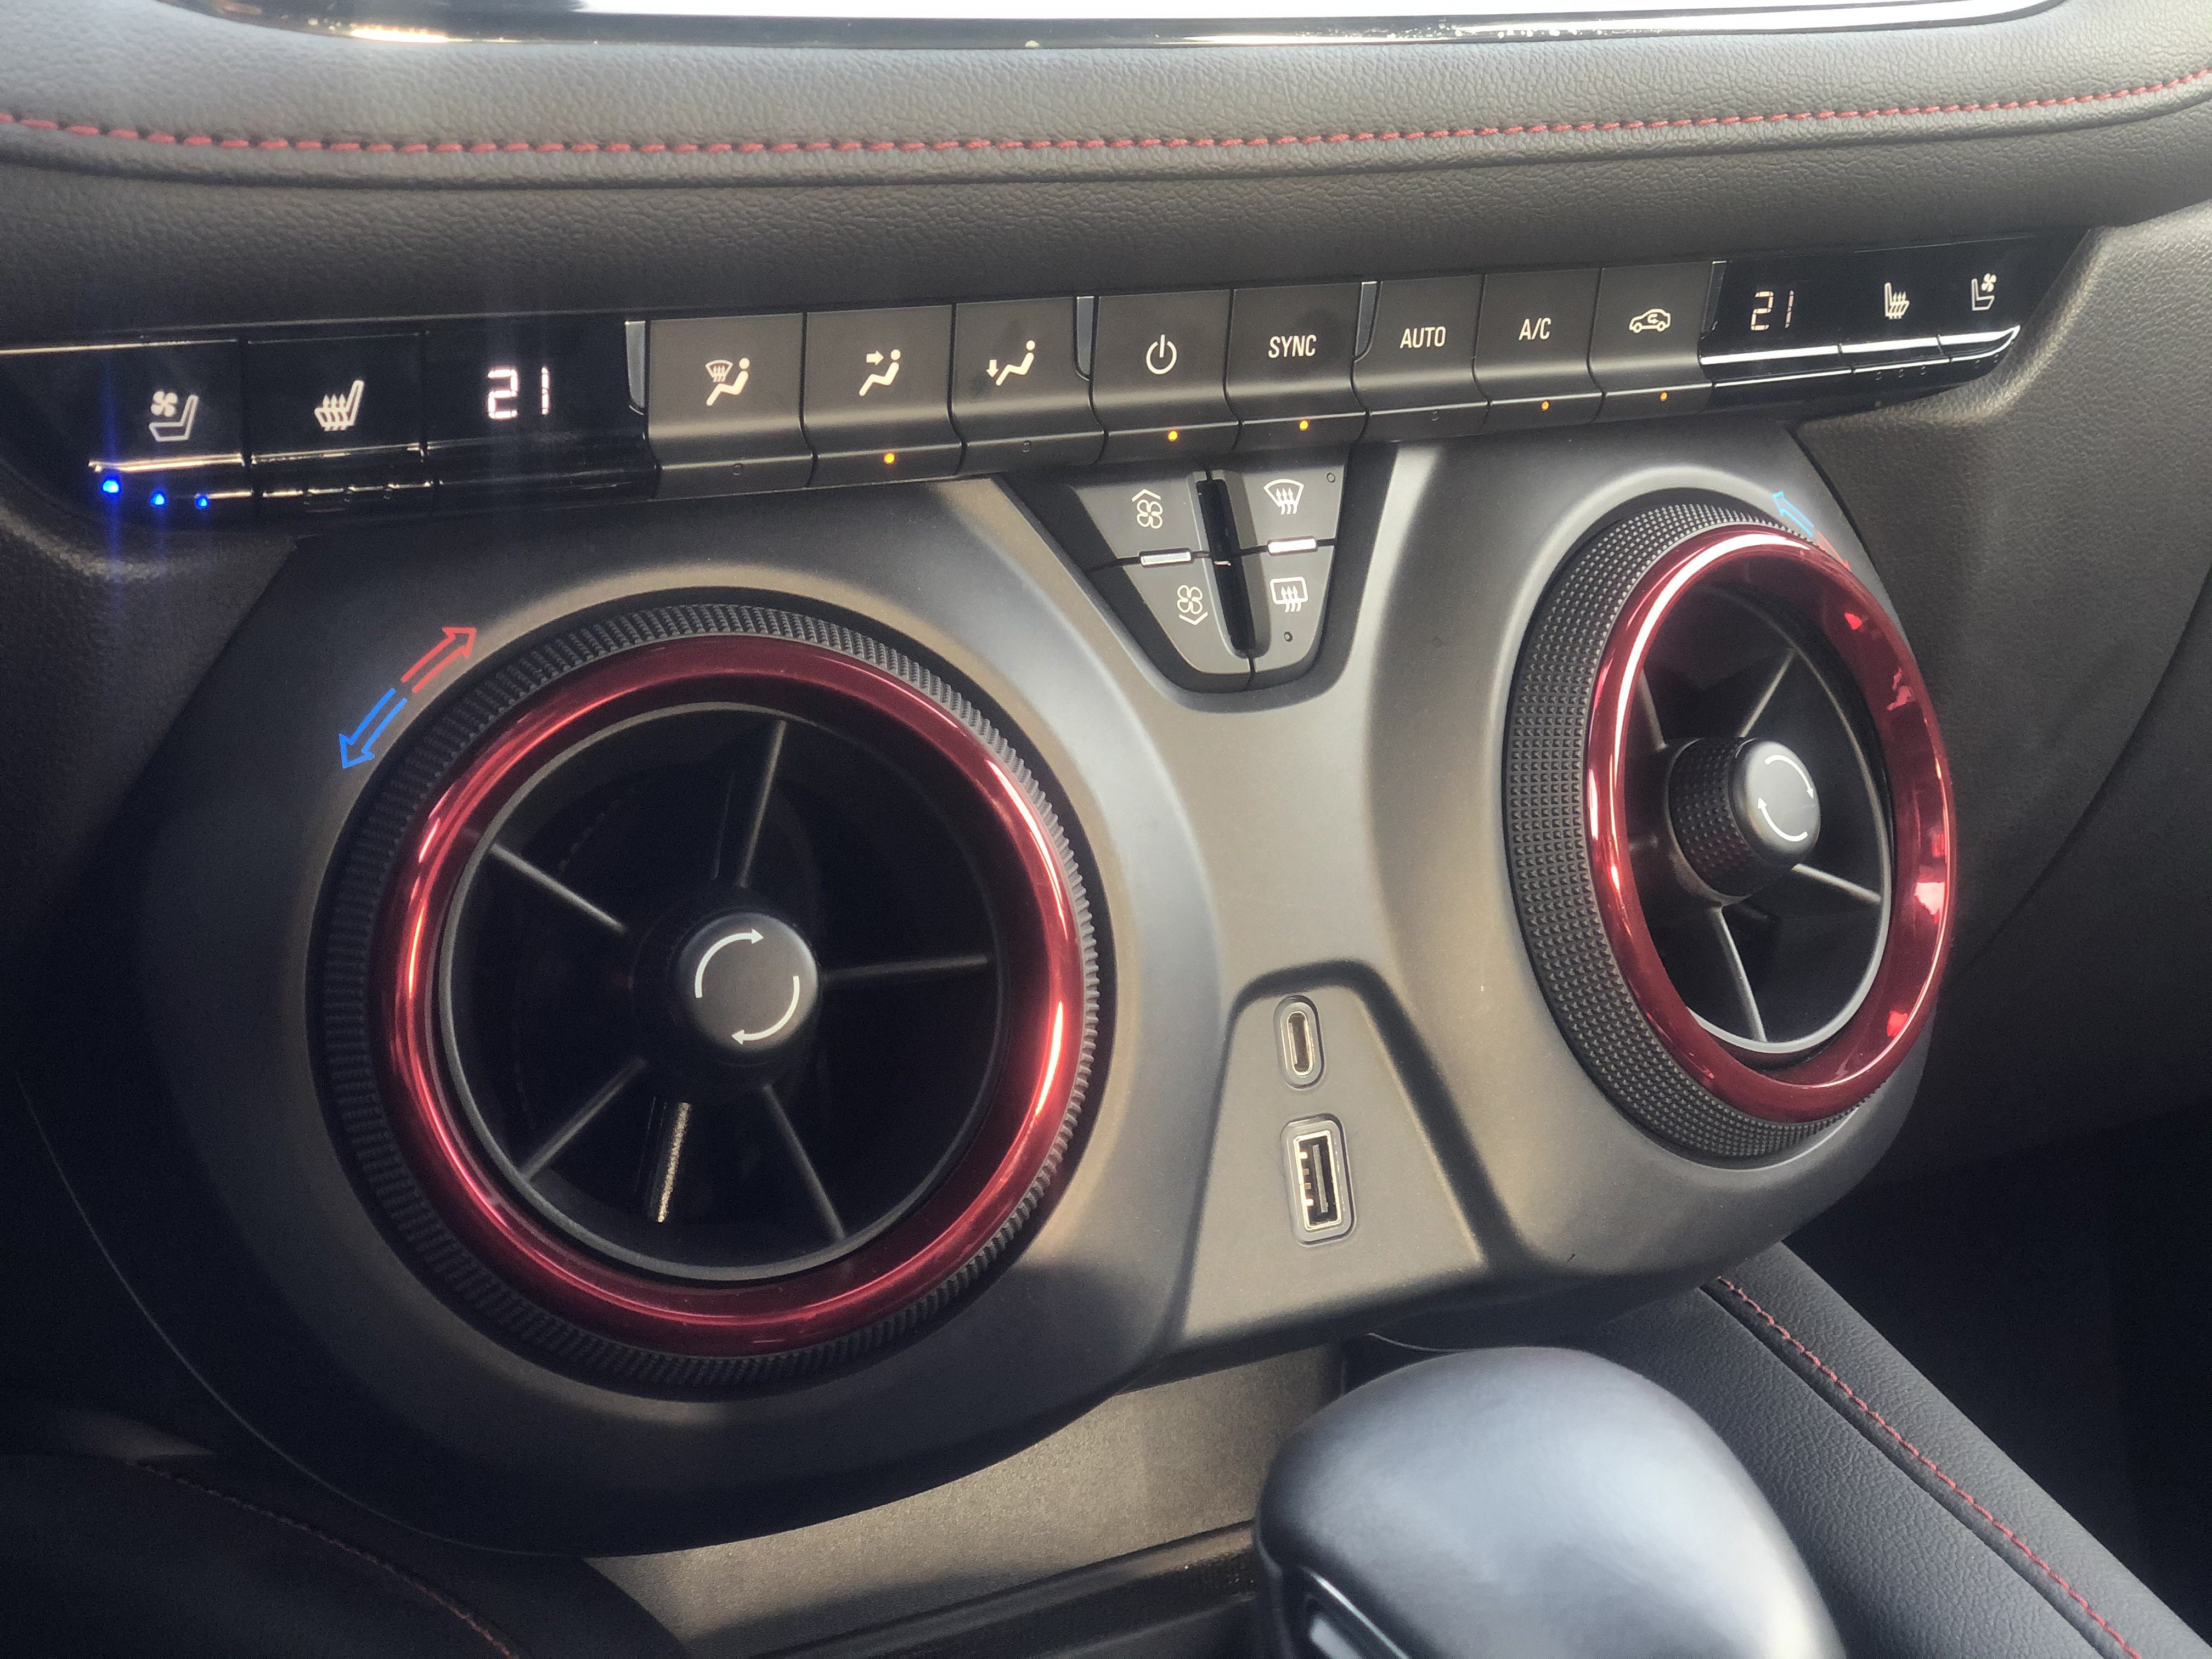 The five-inch circular air conditioning ventilation mounted on the center console